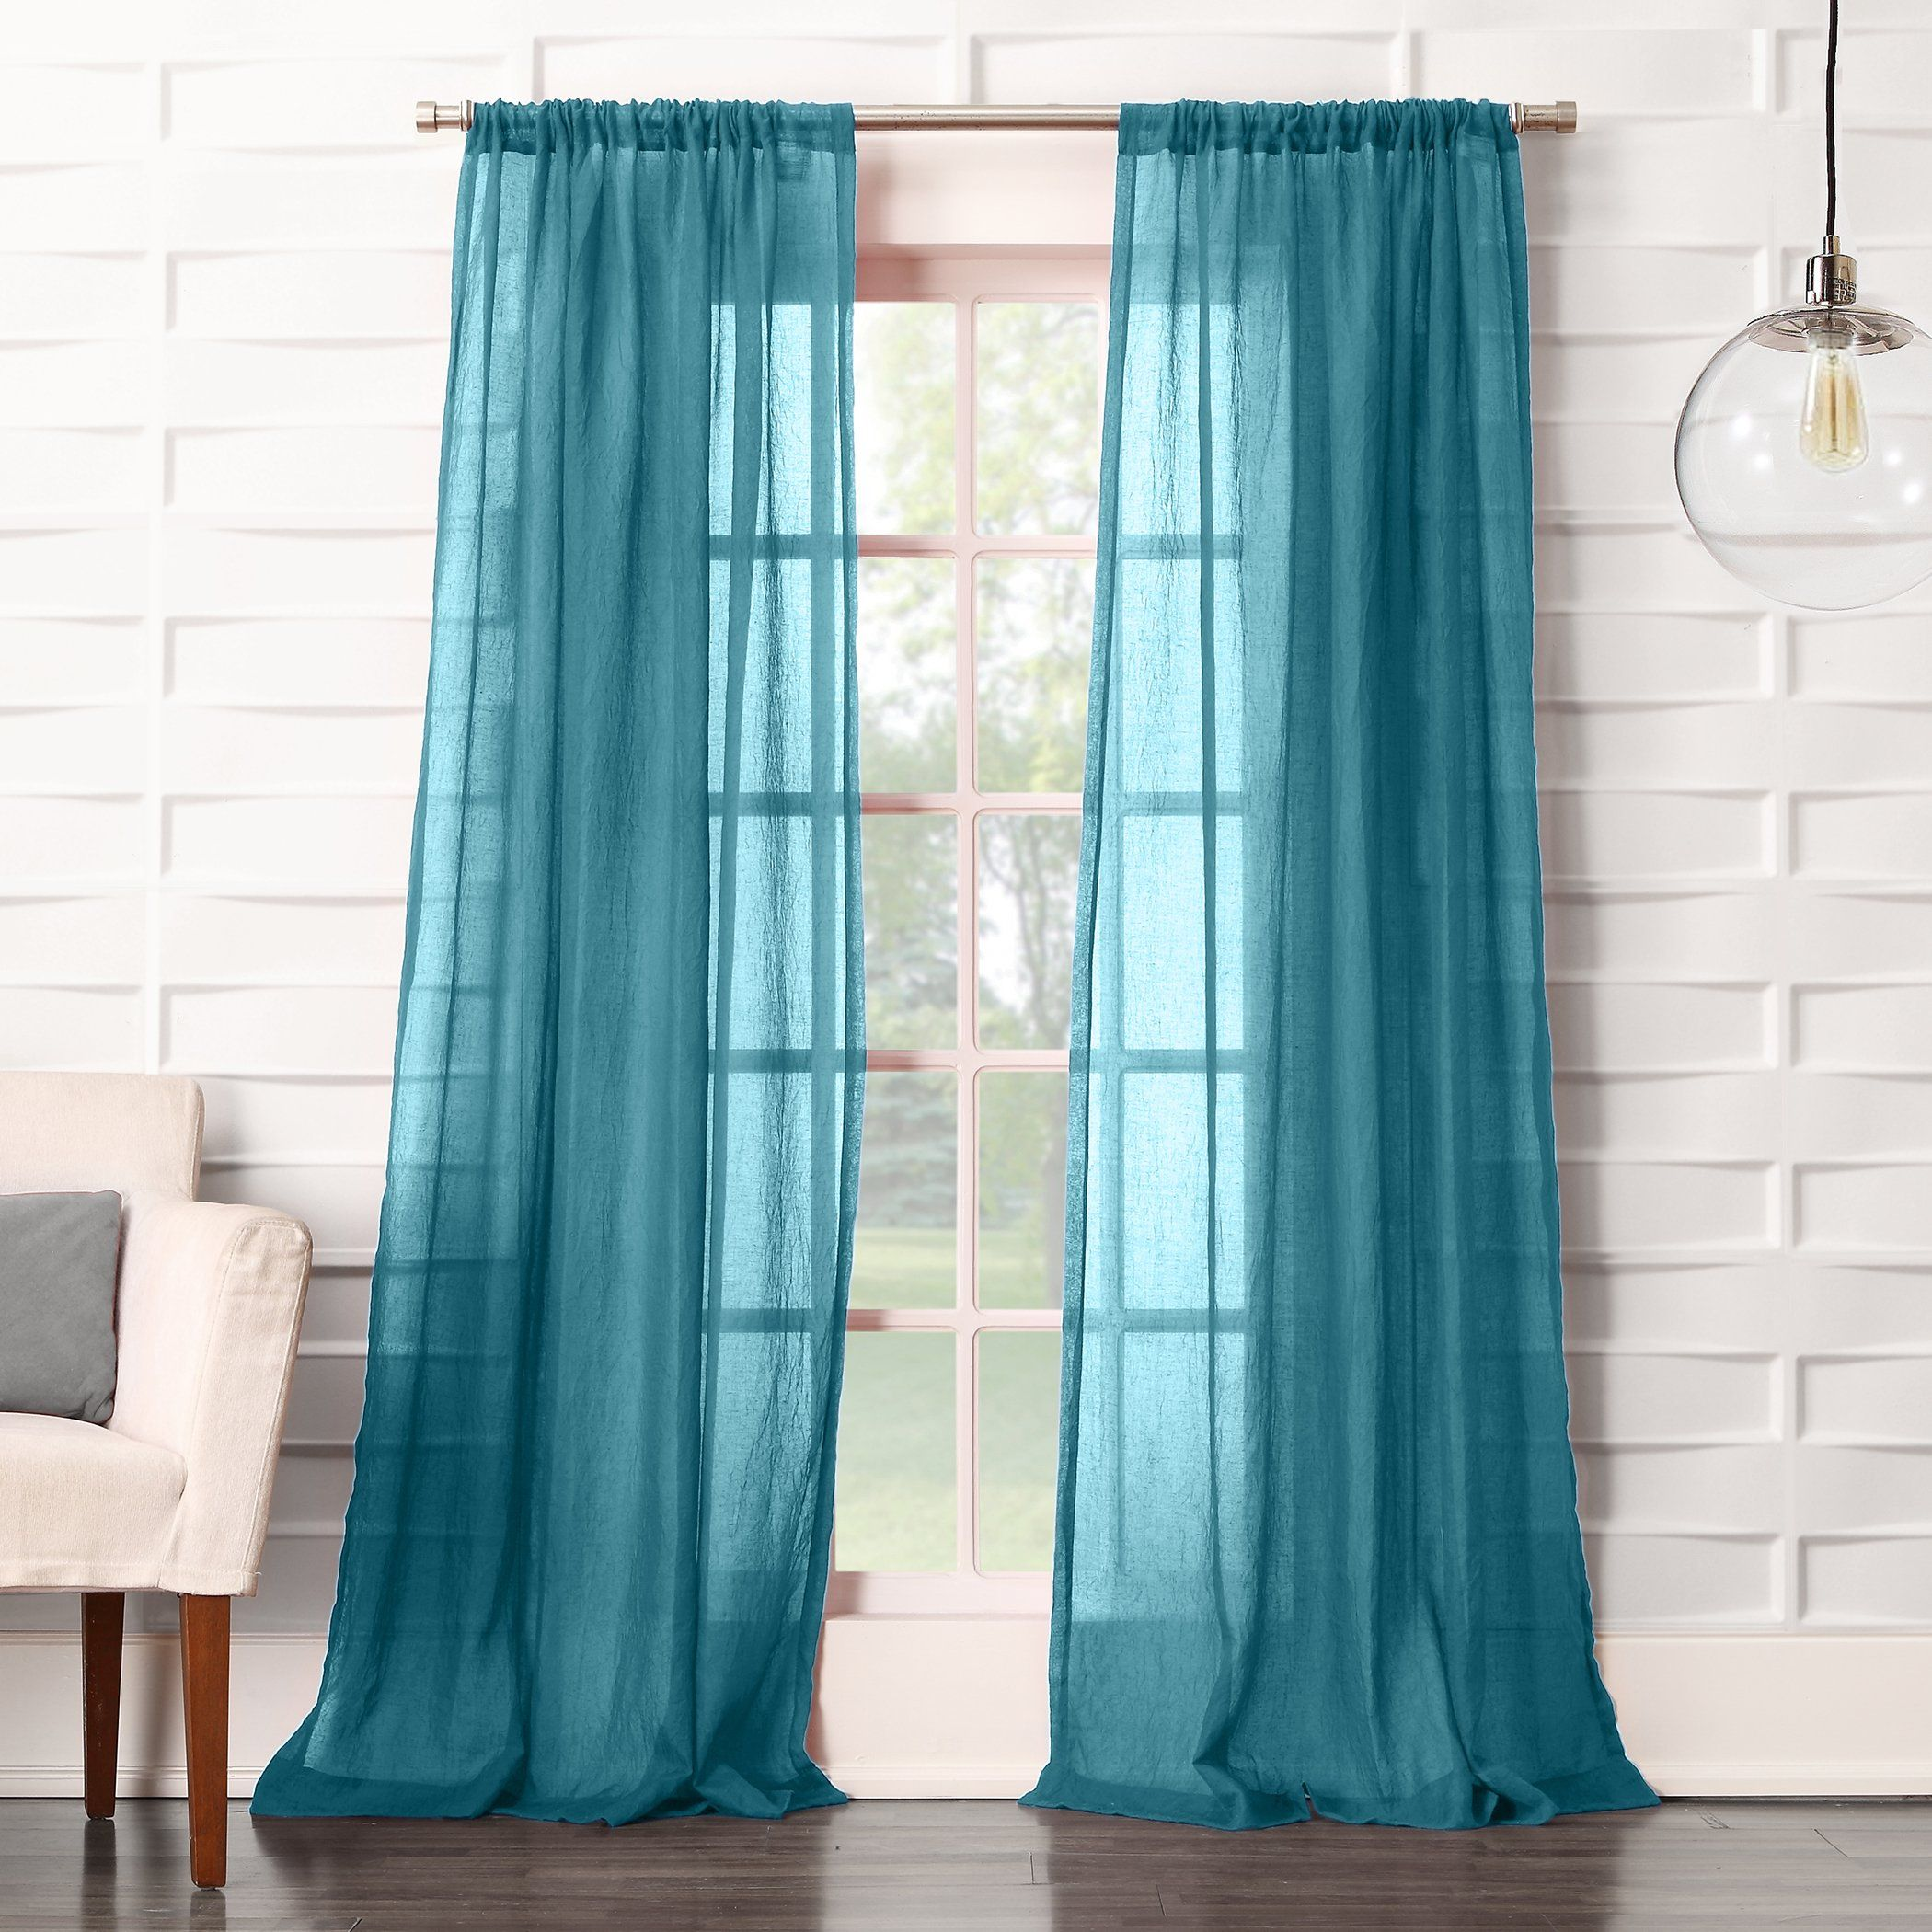 No 918 Tayla Crushed Sheer Voile Rod Pocket Curtain Panel 50 X 95